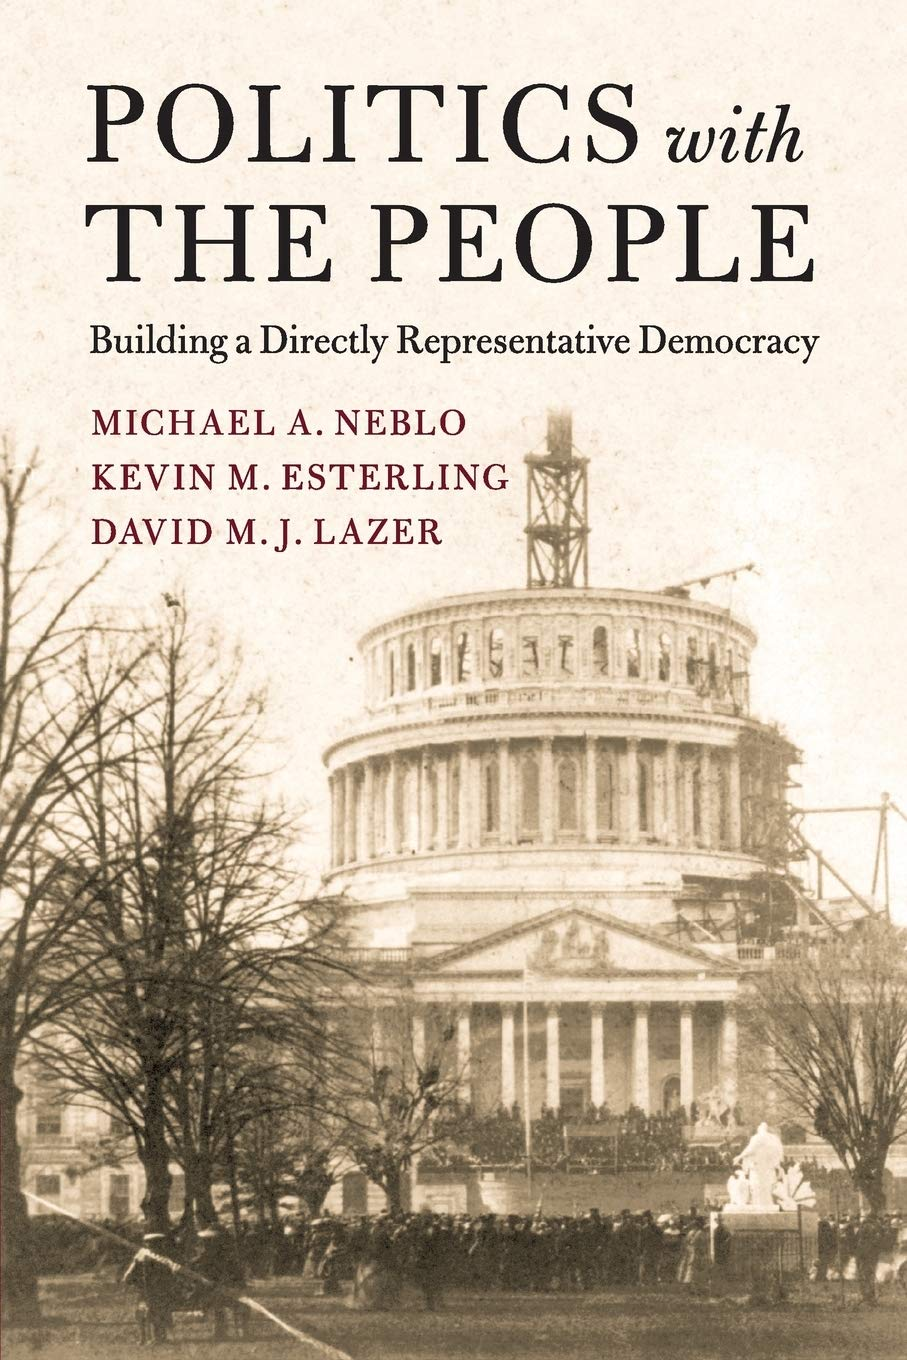 Image OfPolitics With The People (Cambridge Studies In Public Opinion And Political Psychology)